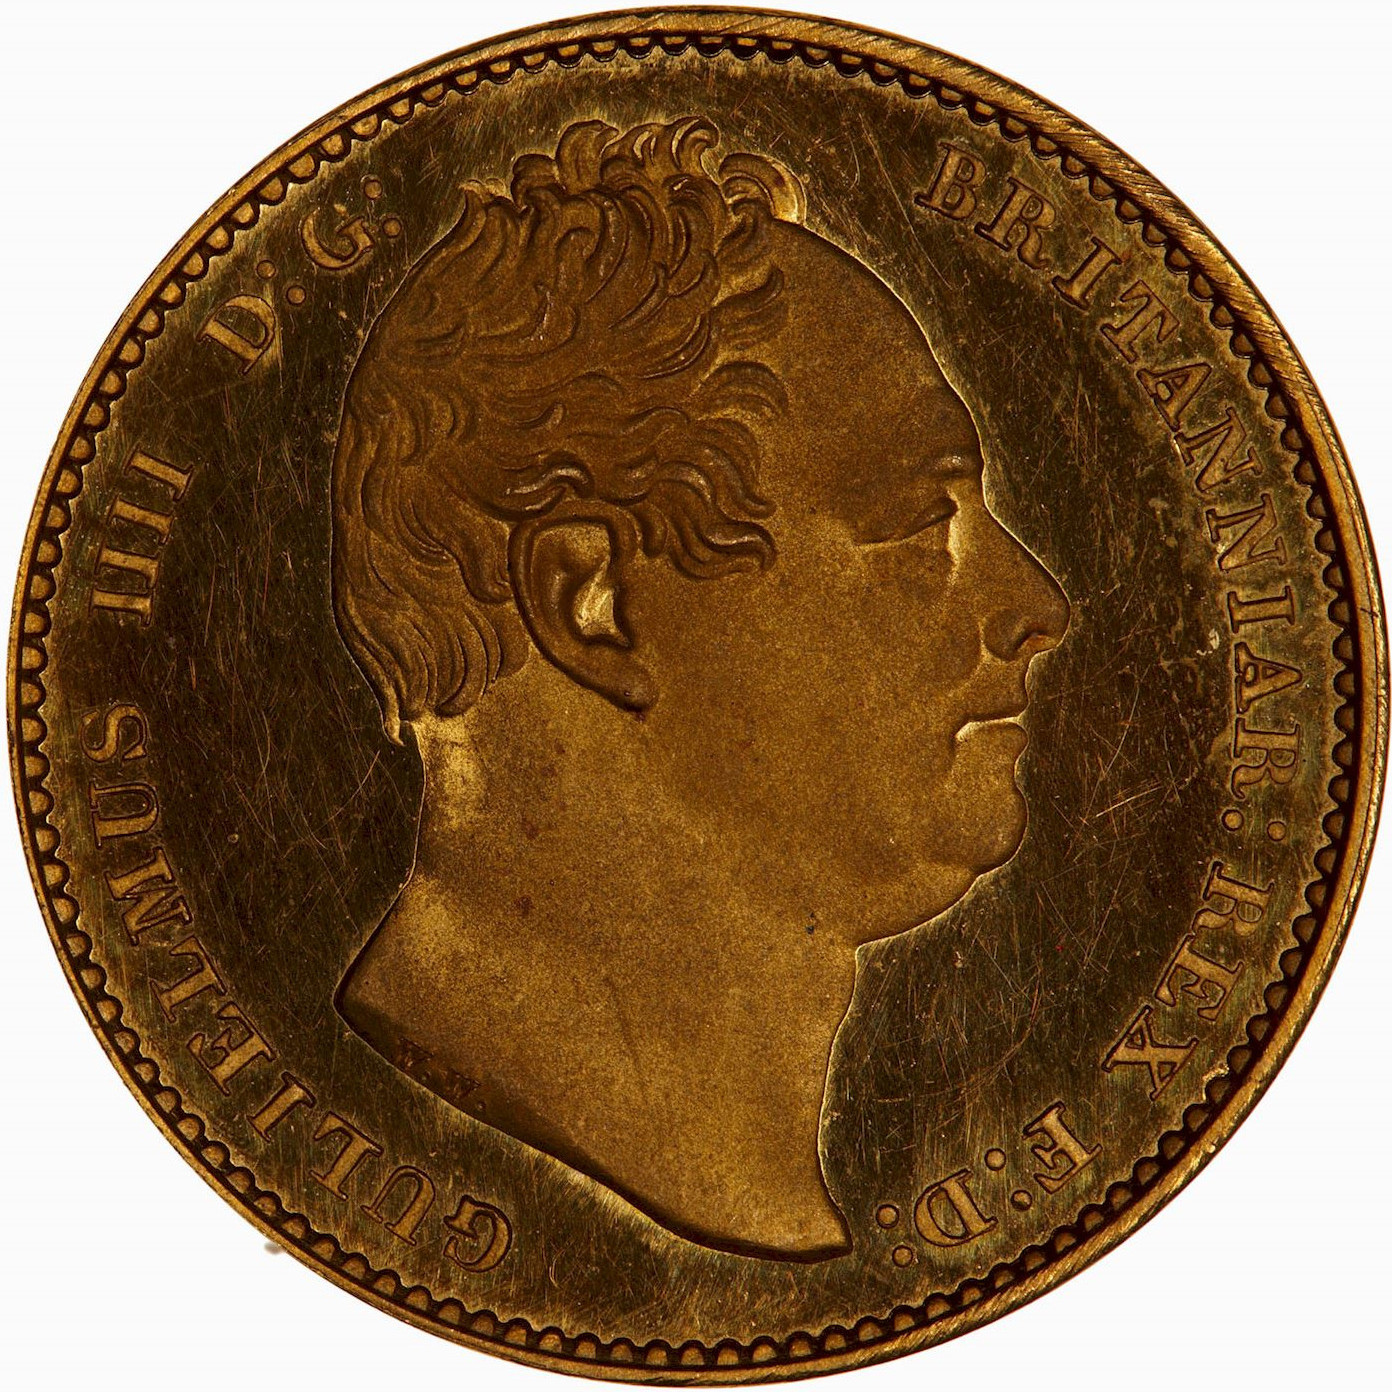 Sovereign (Pre-Decimal): Photo Proof Coin - Sovereign, William IV, Great Britain, 1831